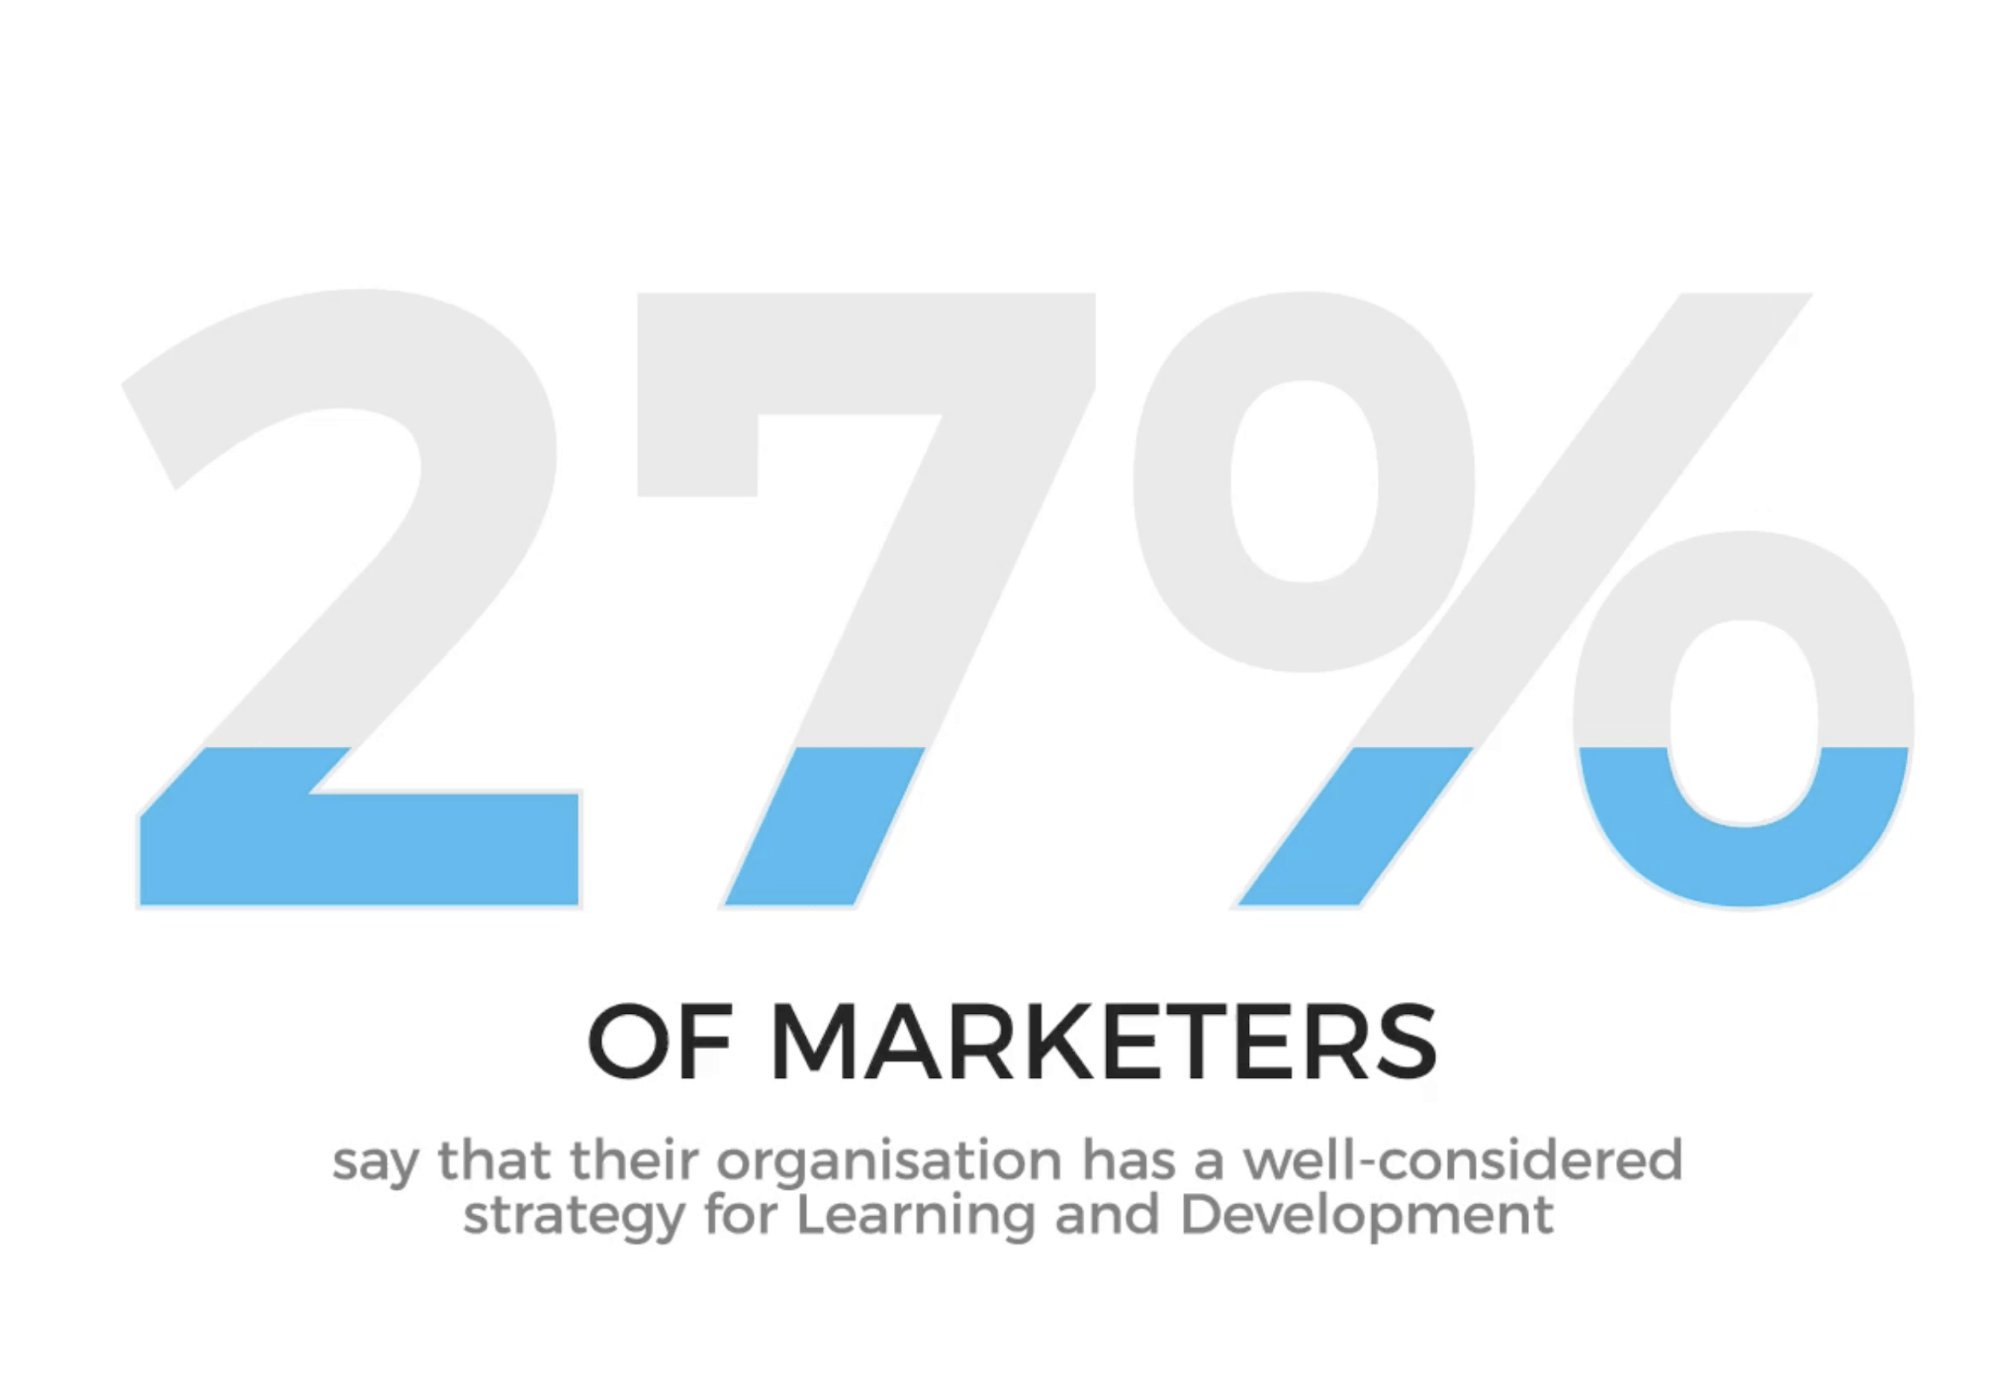 27% of marketers